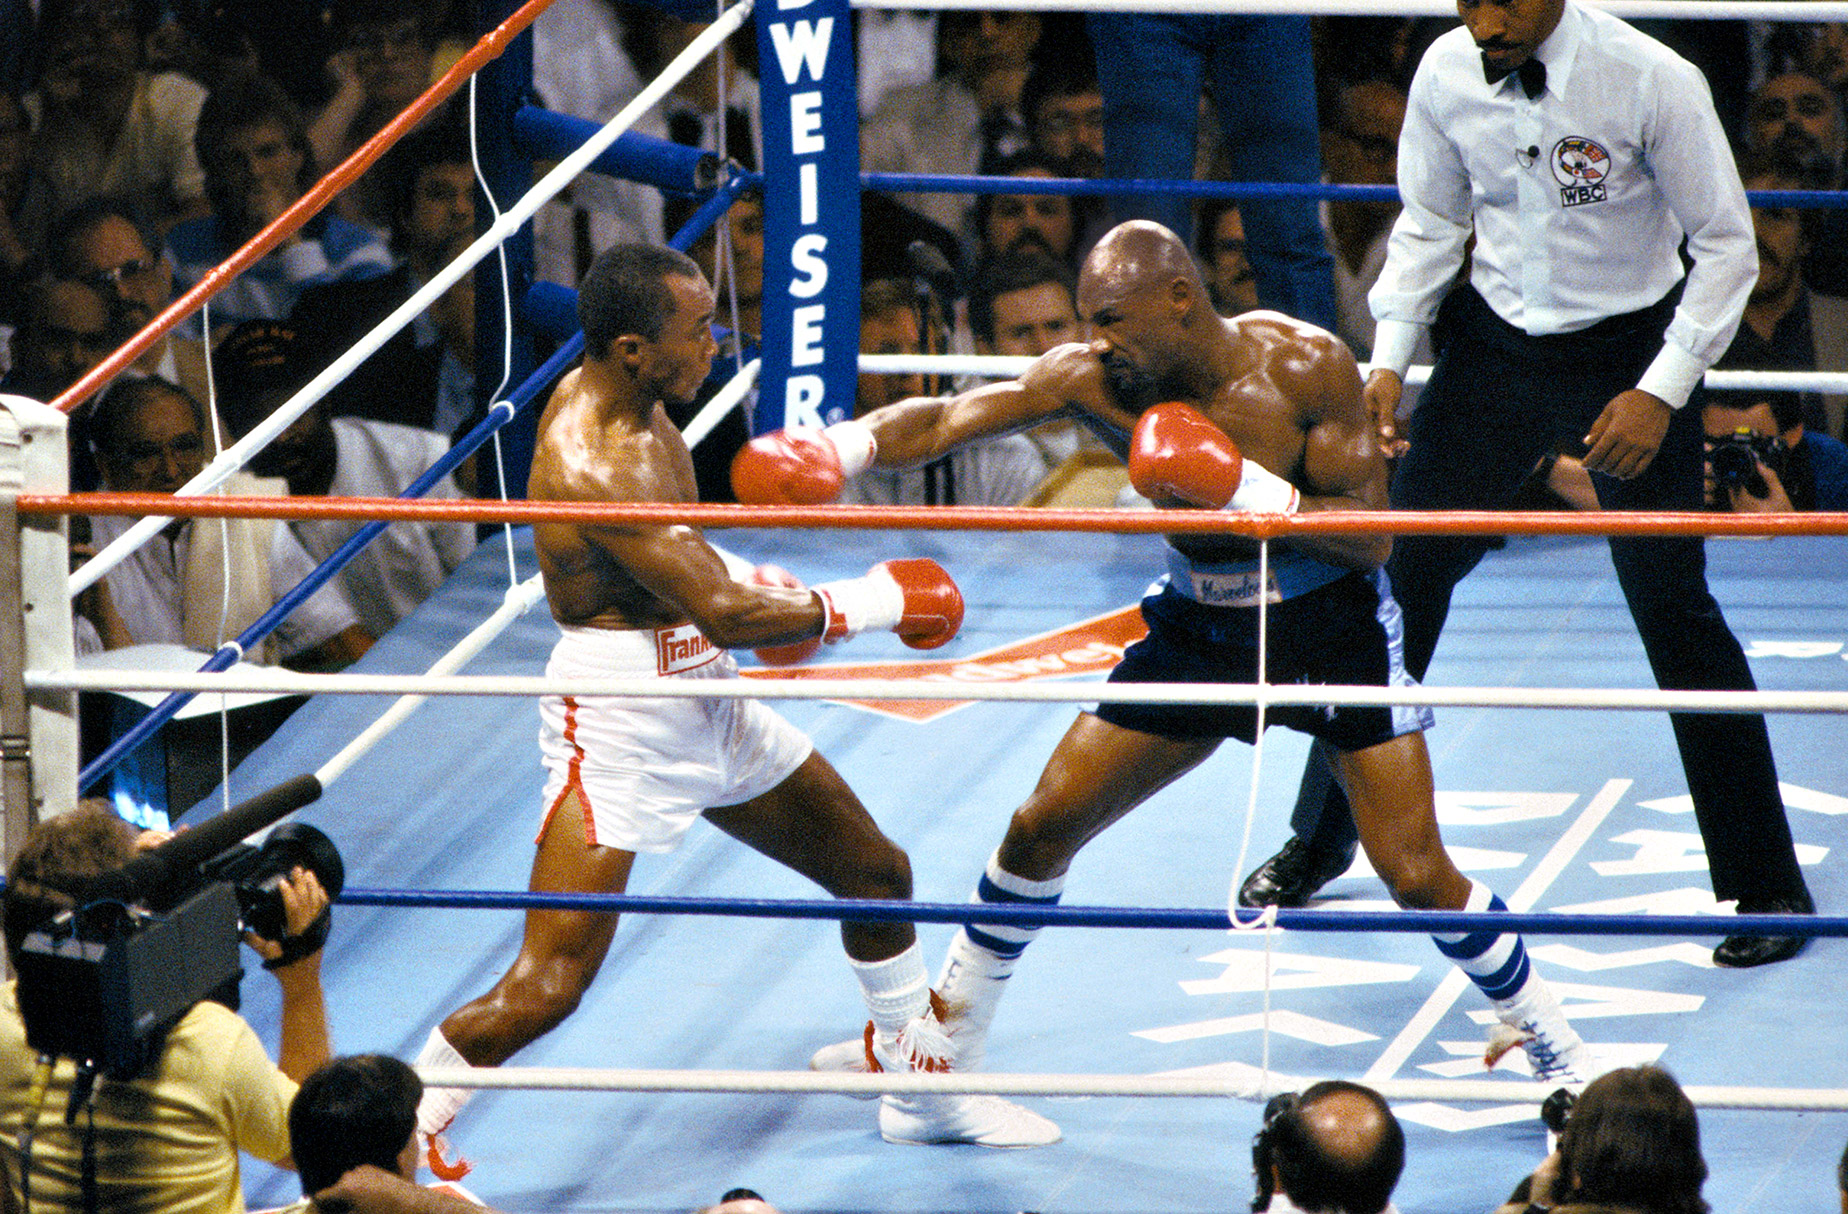 Sugar Ray Leonard won a controversial decision over Marvin Hagler in 1987 after a three-year absence from the sport. Photo: Andrew D. Bernstein/Getty Images